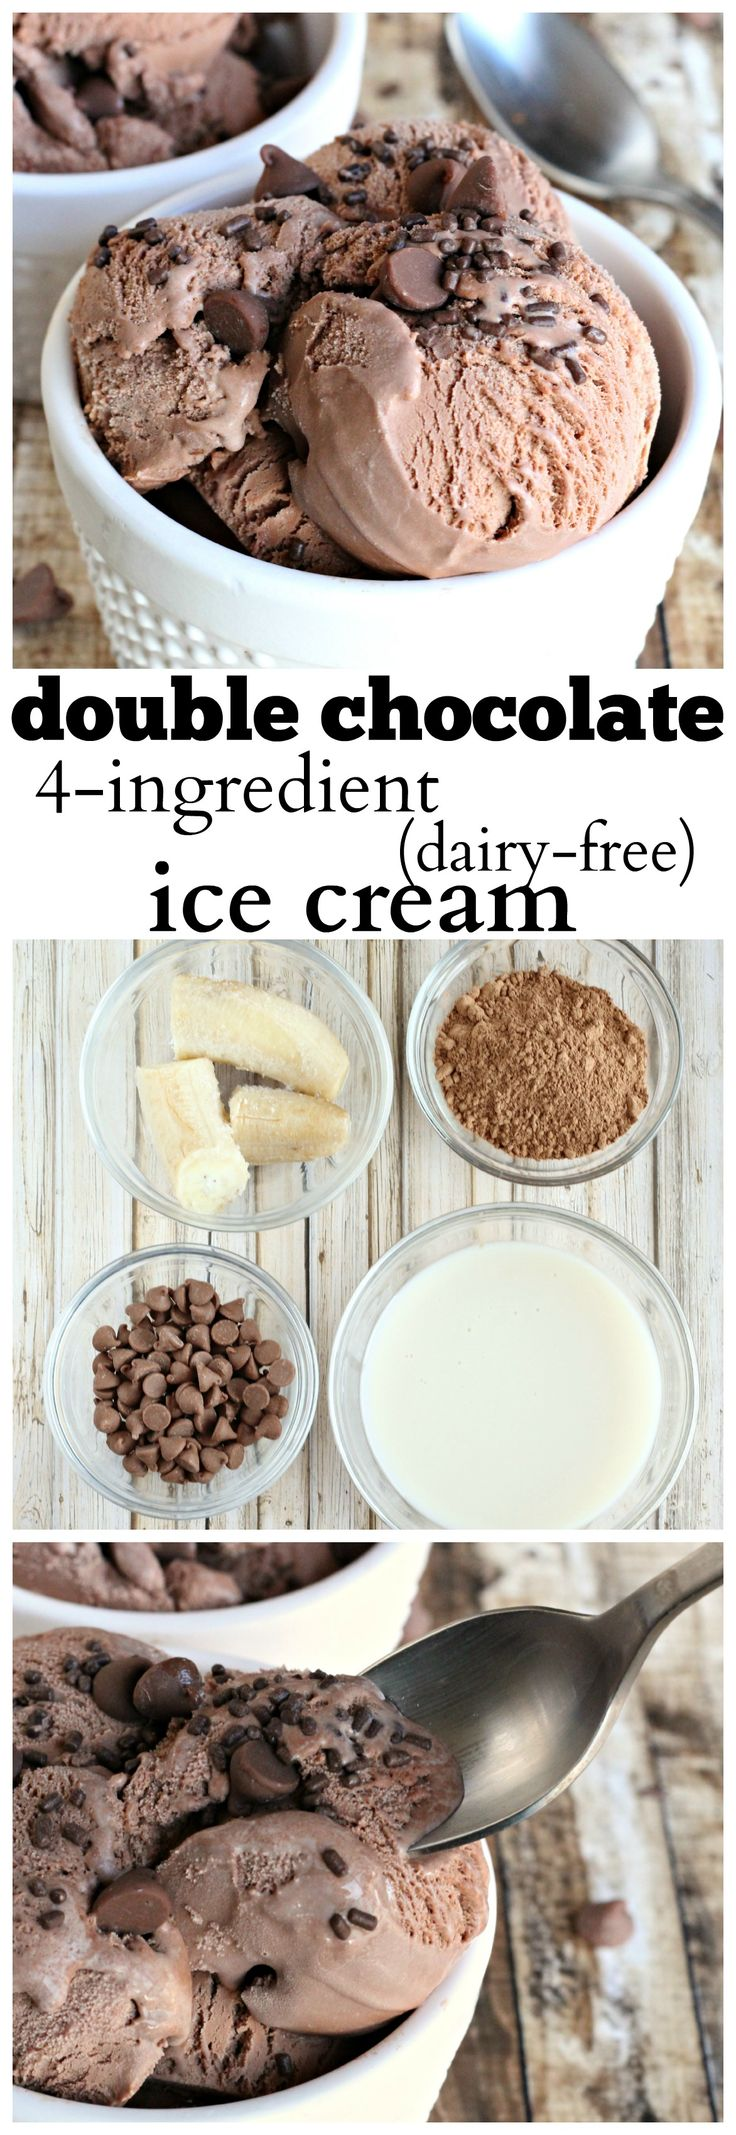 "Double Chocolate ice cream, made dairy free with only 4 ingredients. A rich chocolate ""ice cream"" treat for those avoiding dairy."